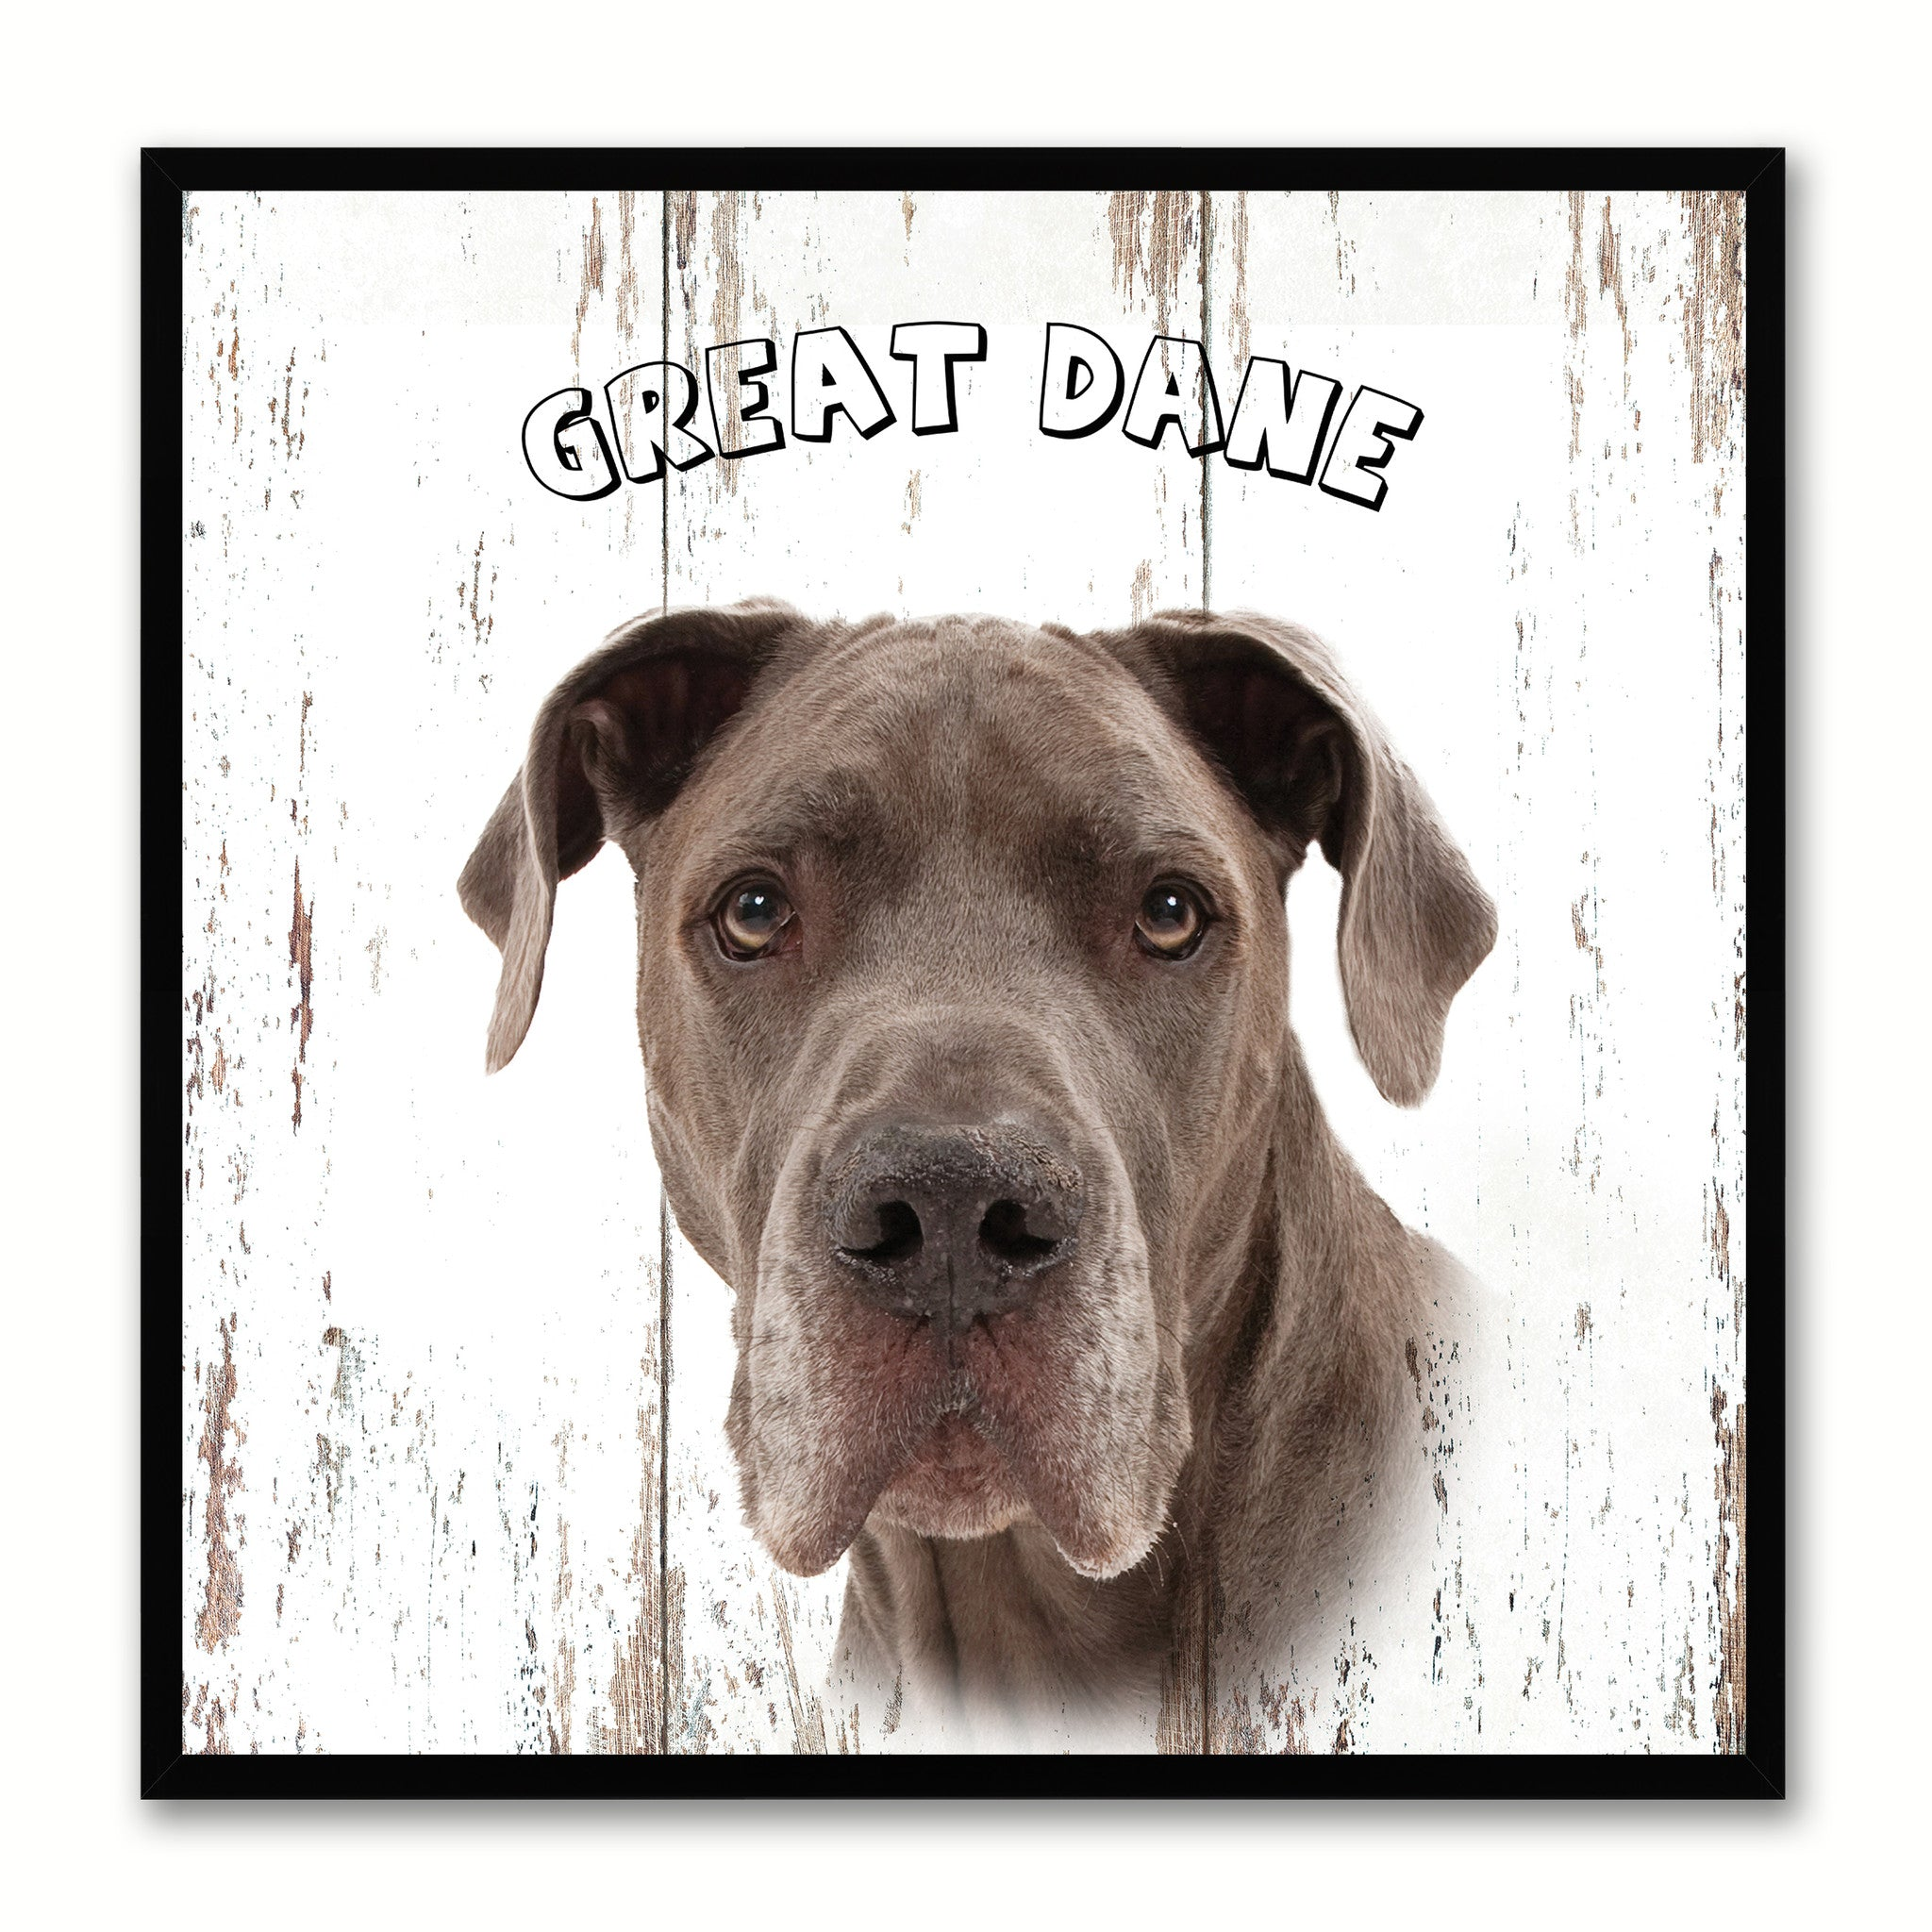 GreatDane Dog Canvas Print Picture Frame Gift Home Decor Wall Art Decoration